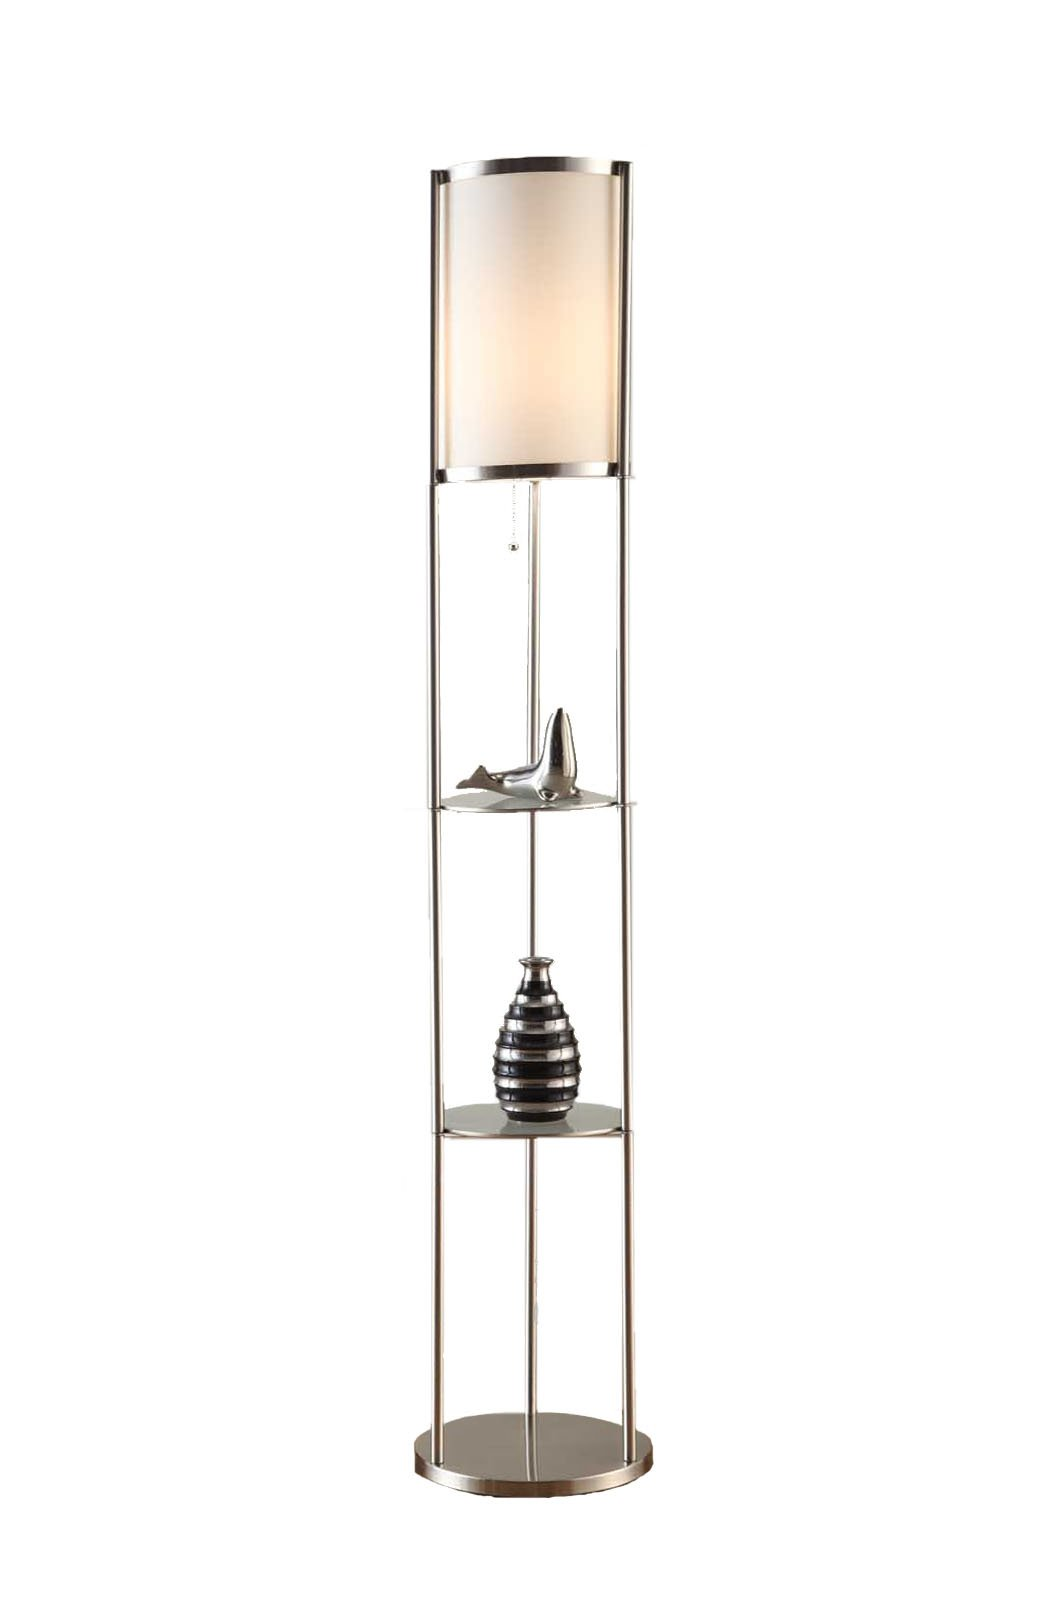 Artiva USA Exeter, Modern Design, 63-Inch Brushed Steel Finish Durable Glass Display Shelf Floor Lamp with Smooth Silk Shade by Artiva USA